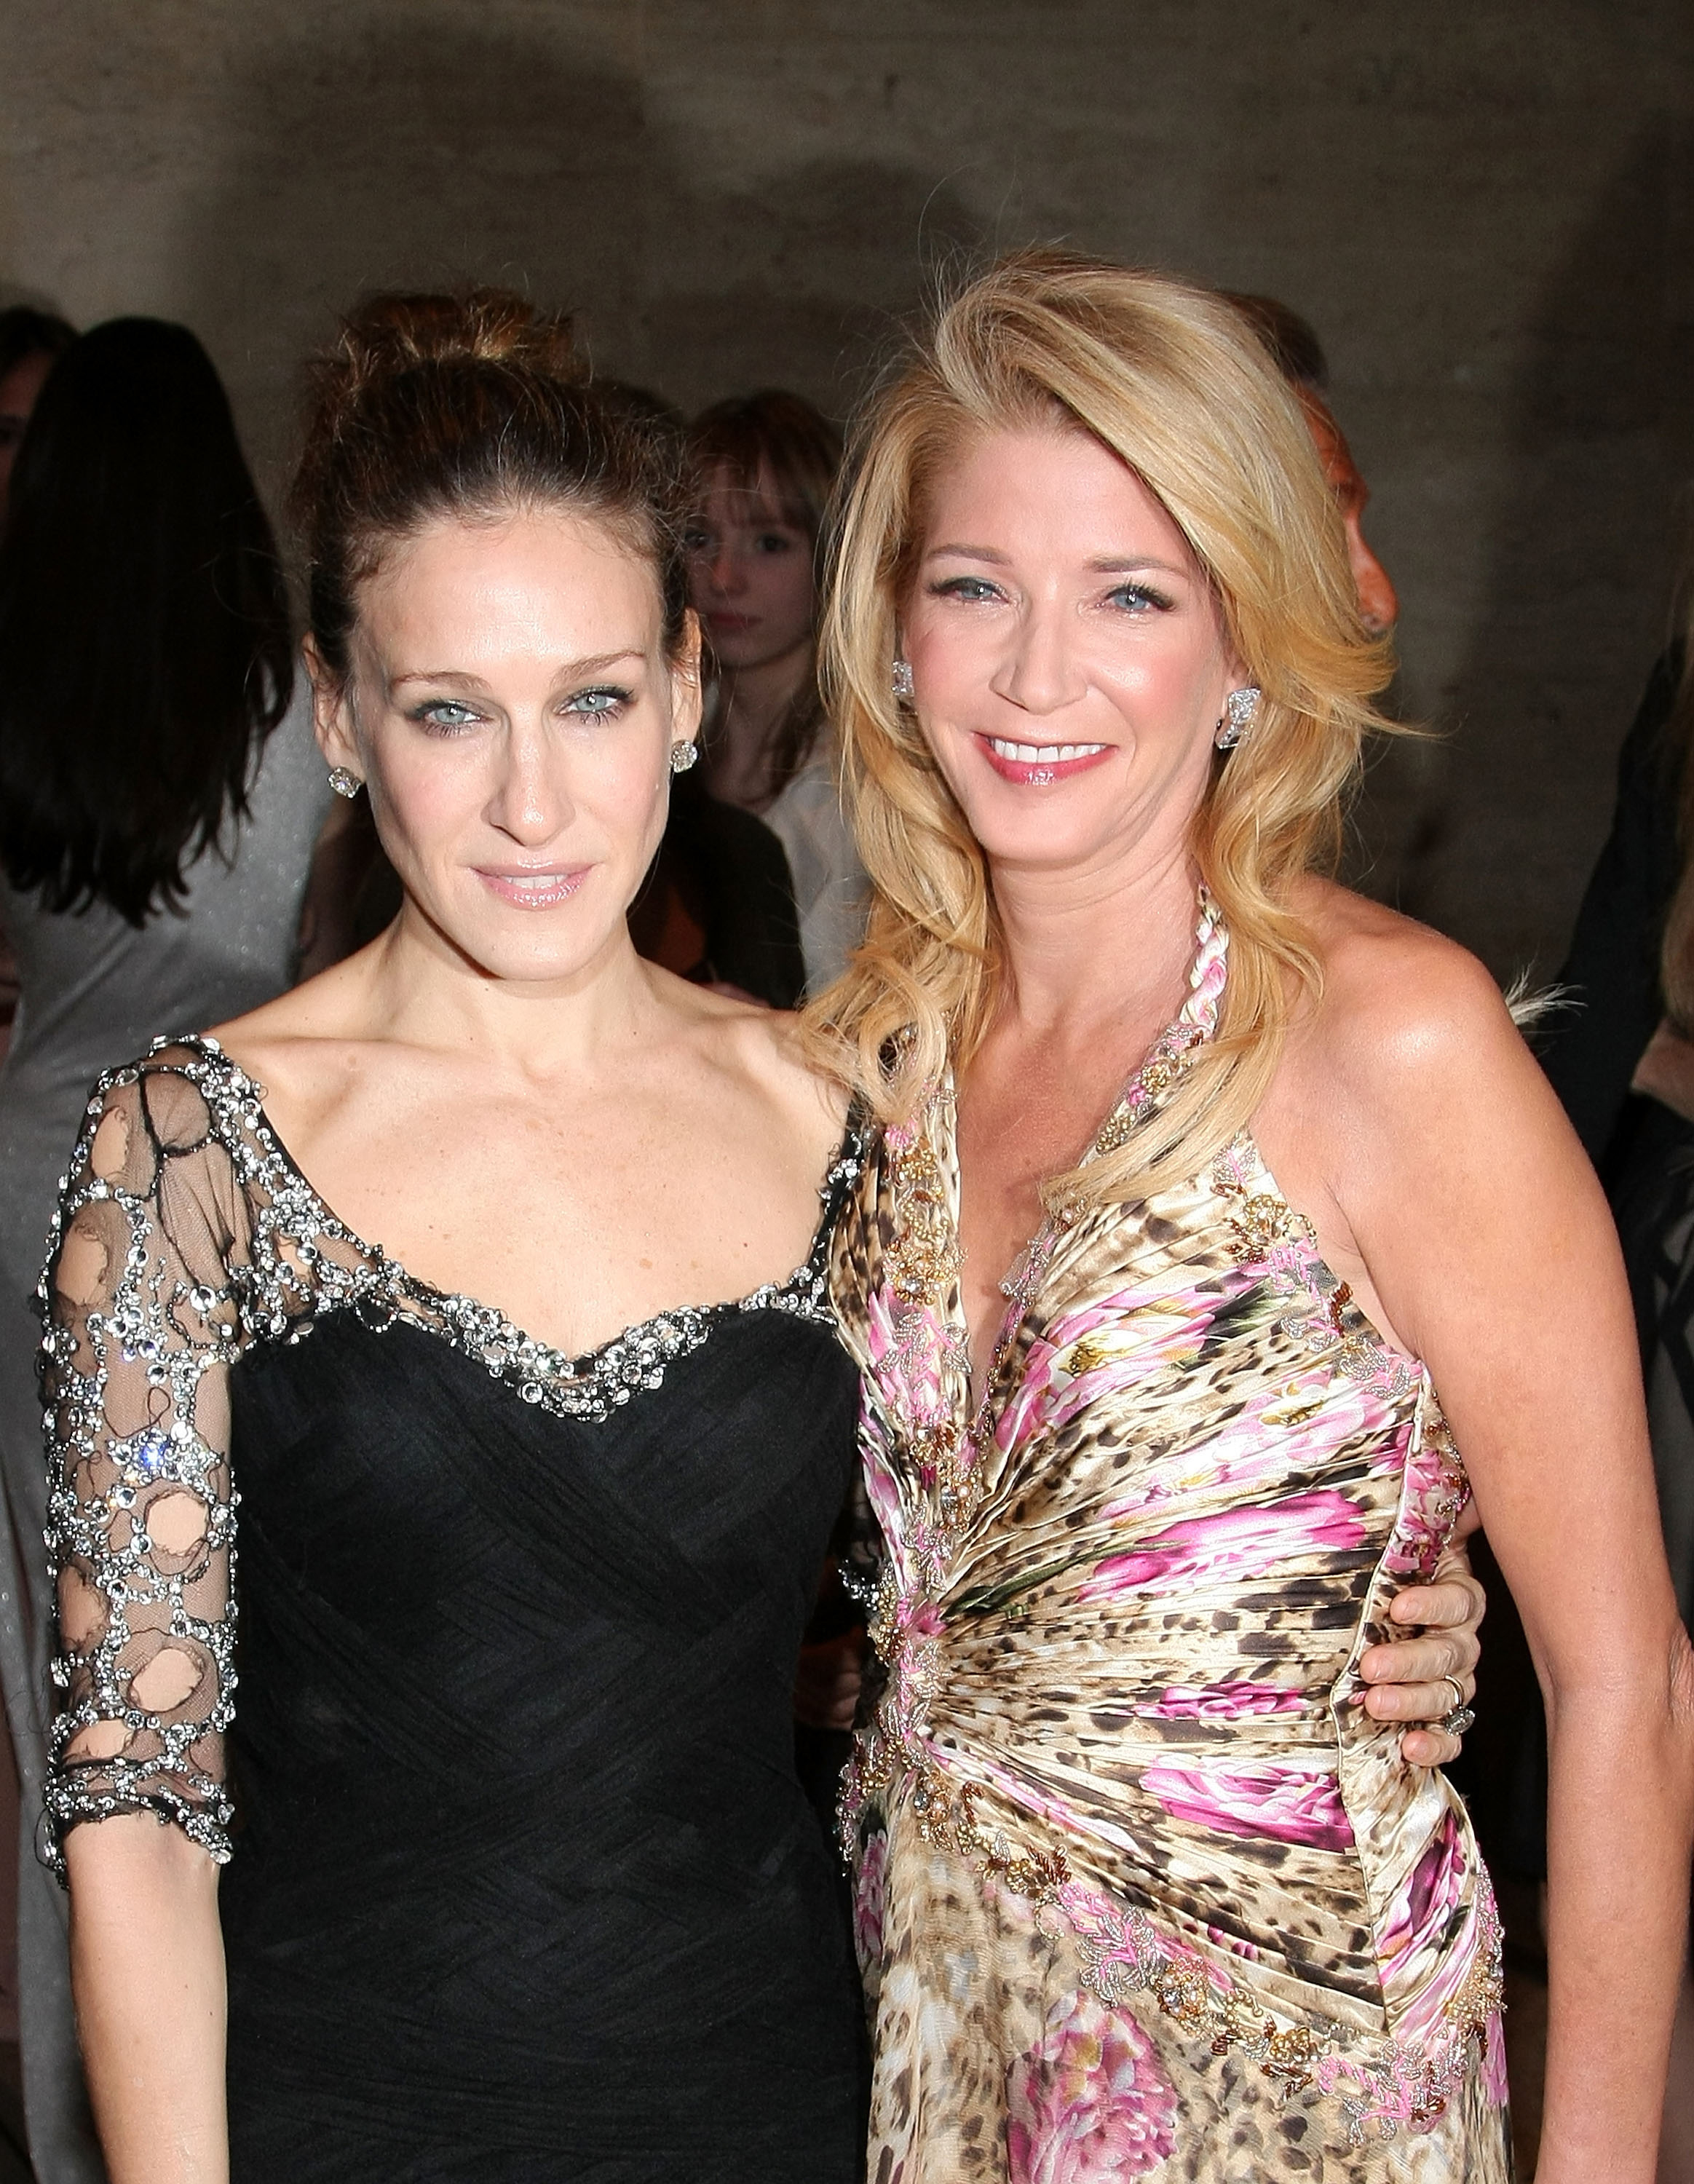 Actress Sarah Jessica Parker and writer Candace Bushnell attend the opening night celebration of the New York City Ballet at David H. Koch Theater, Lincoln Center on November 25, 2008 in New York City.